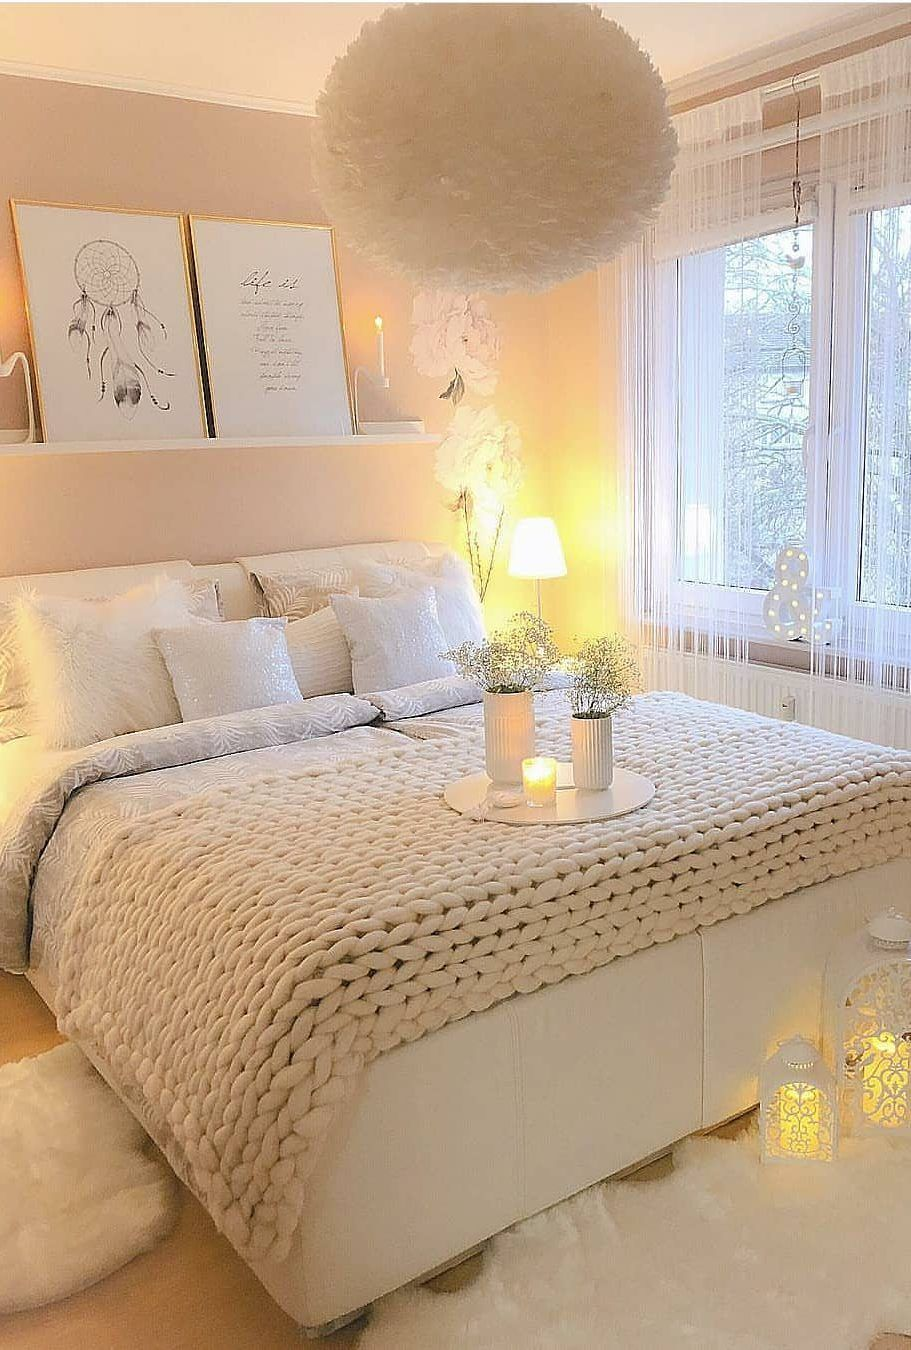 51 Modern And Stylish Bedroom Design And Decoration Ideas Page 29 Of 51 Stylish Bedroom Design Stylish Bedroom Bedroom Design Trends Decorating ideas for bedrooms